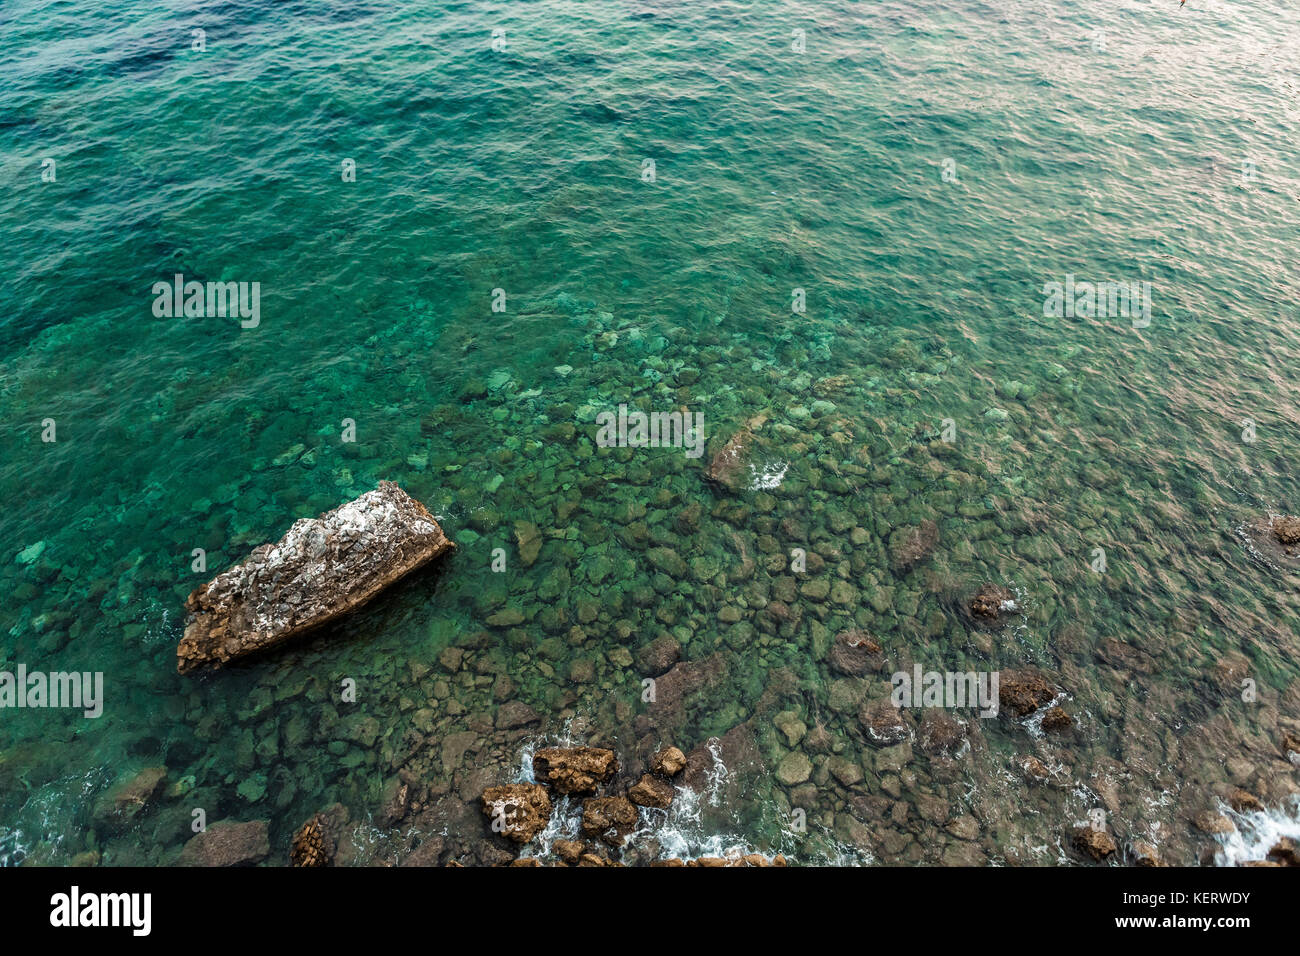 Aerial view of the stones on the bottom of the Adriatic Sea - Stock Image